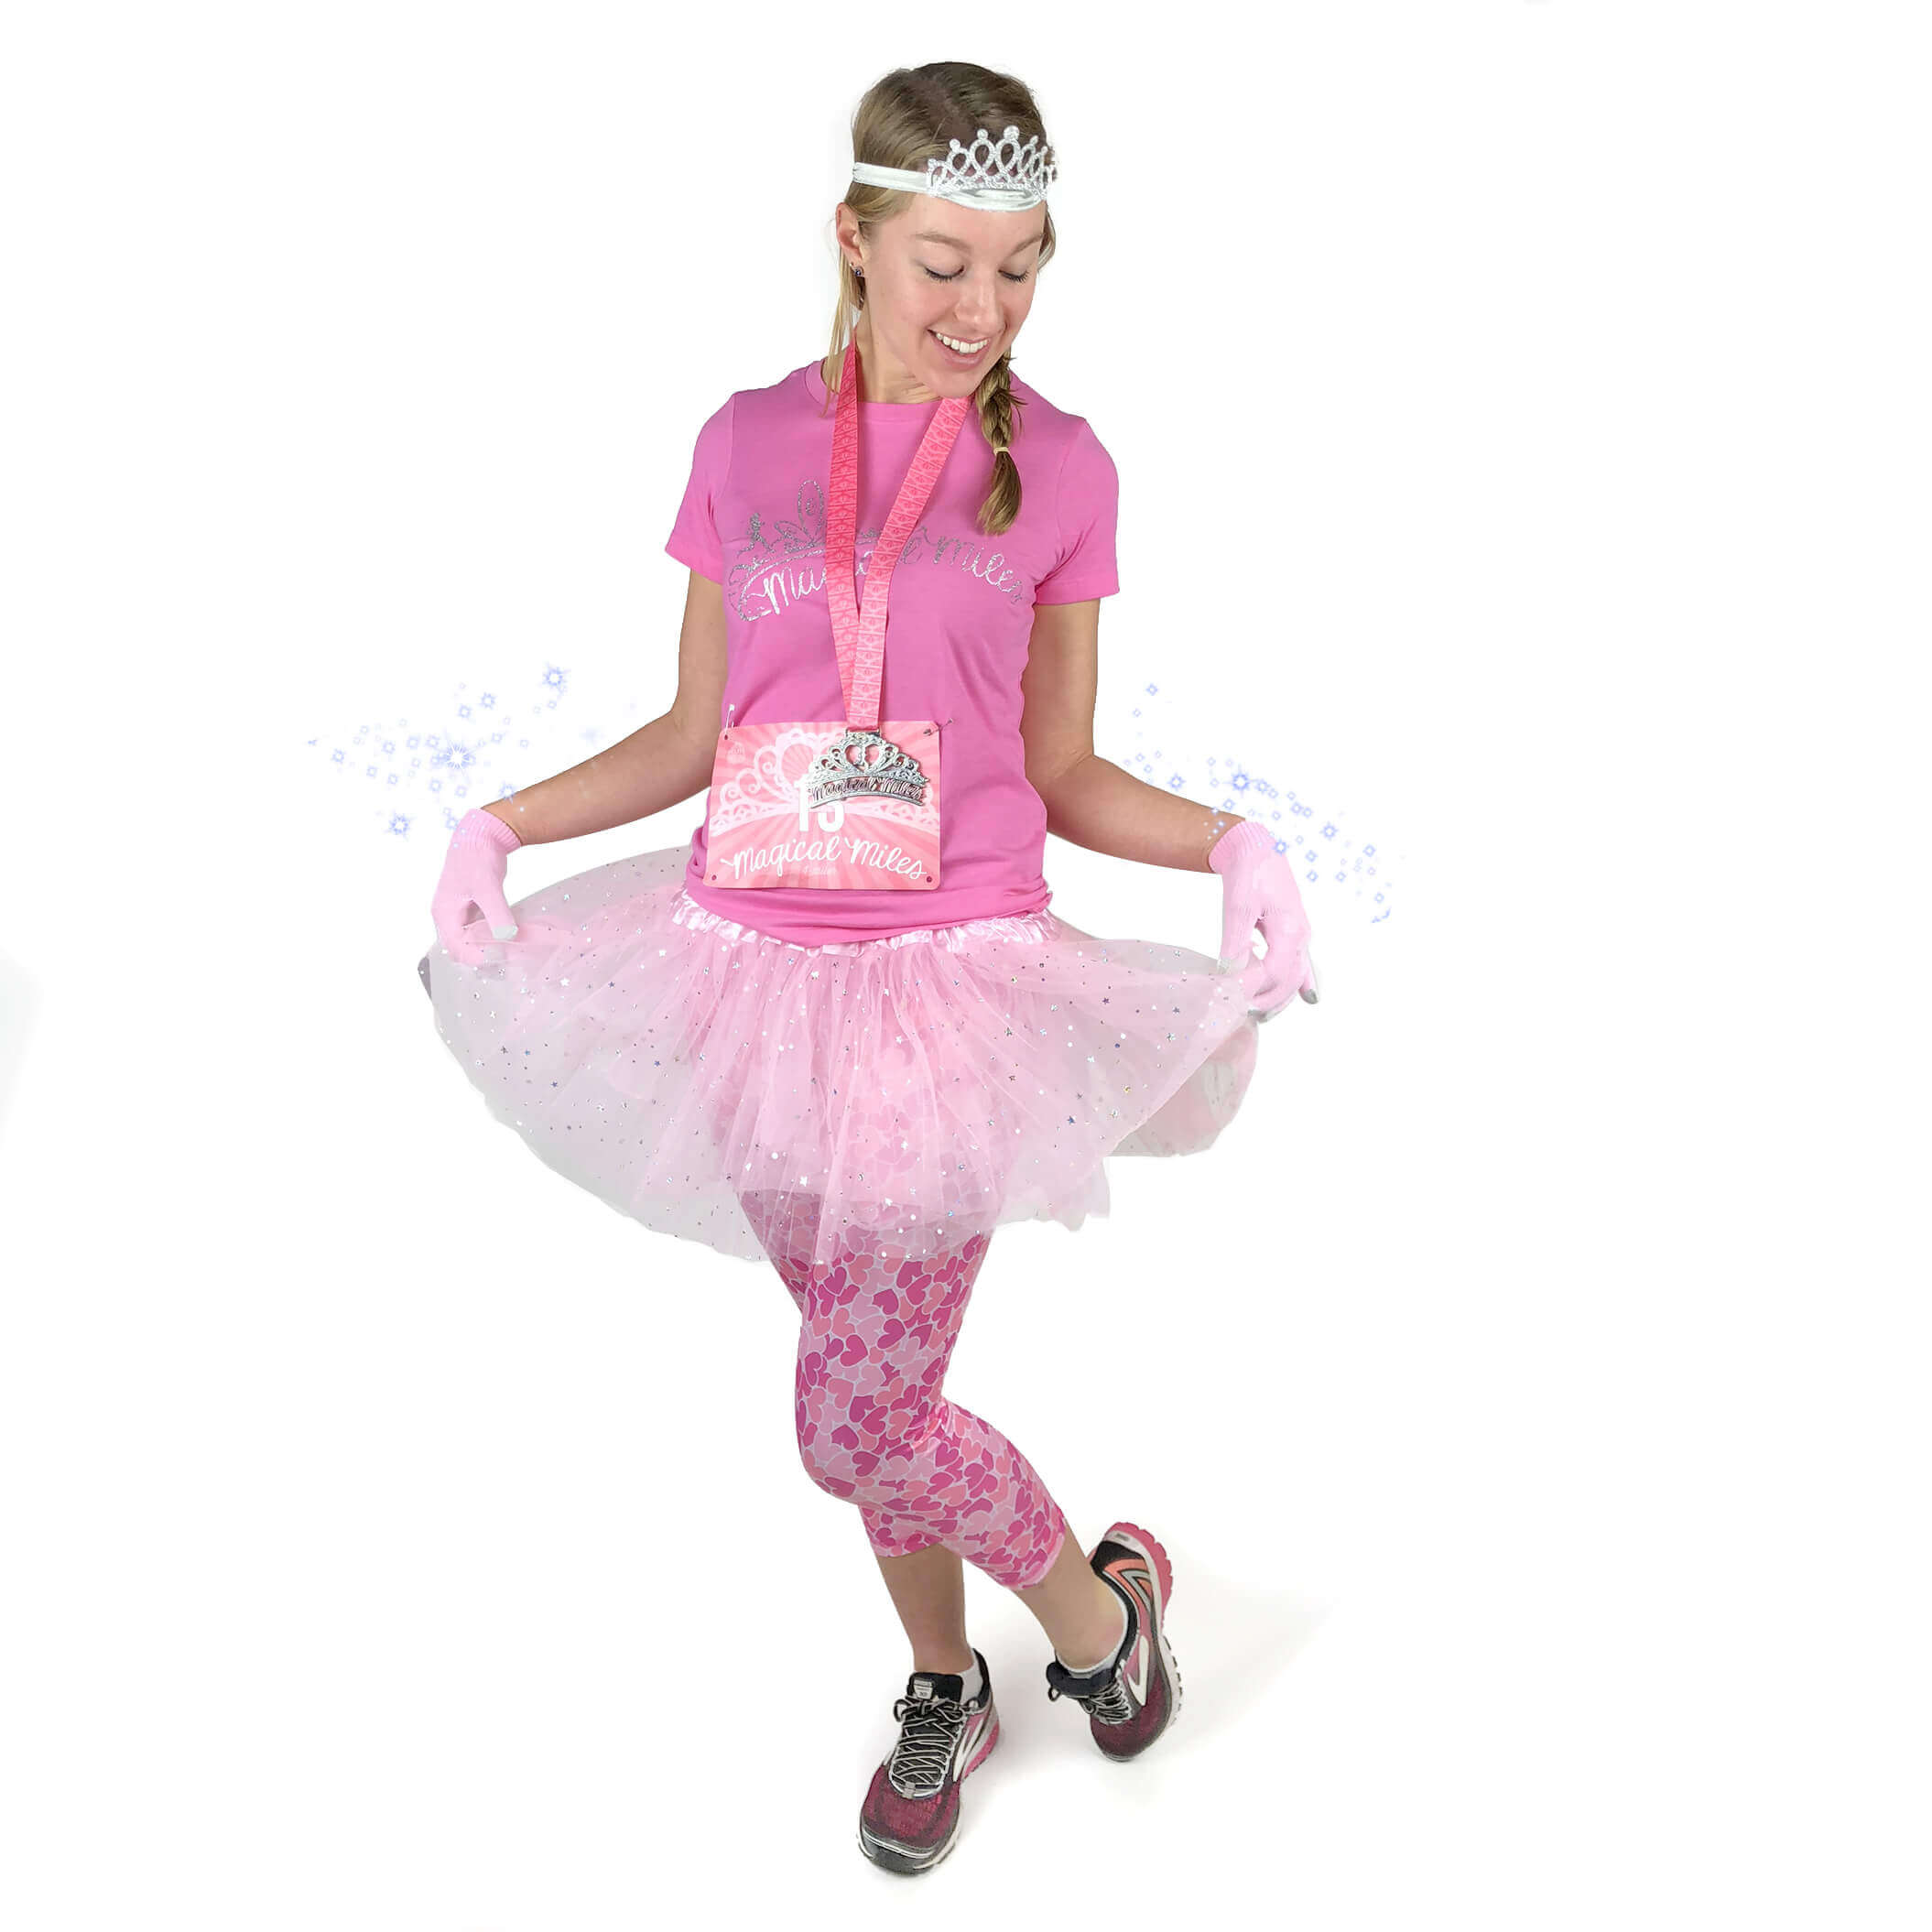 Magical Miles Running Costume Pink